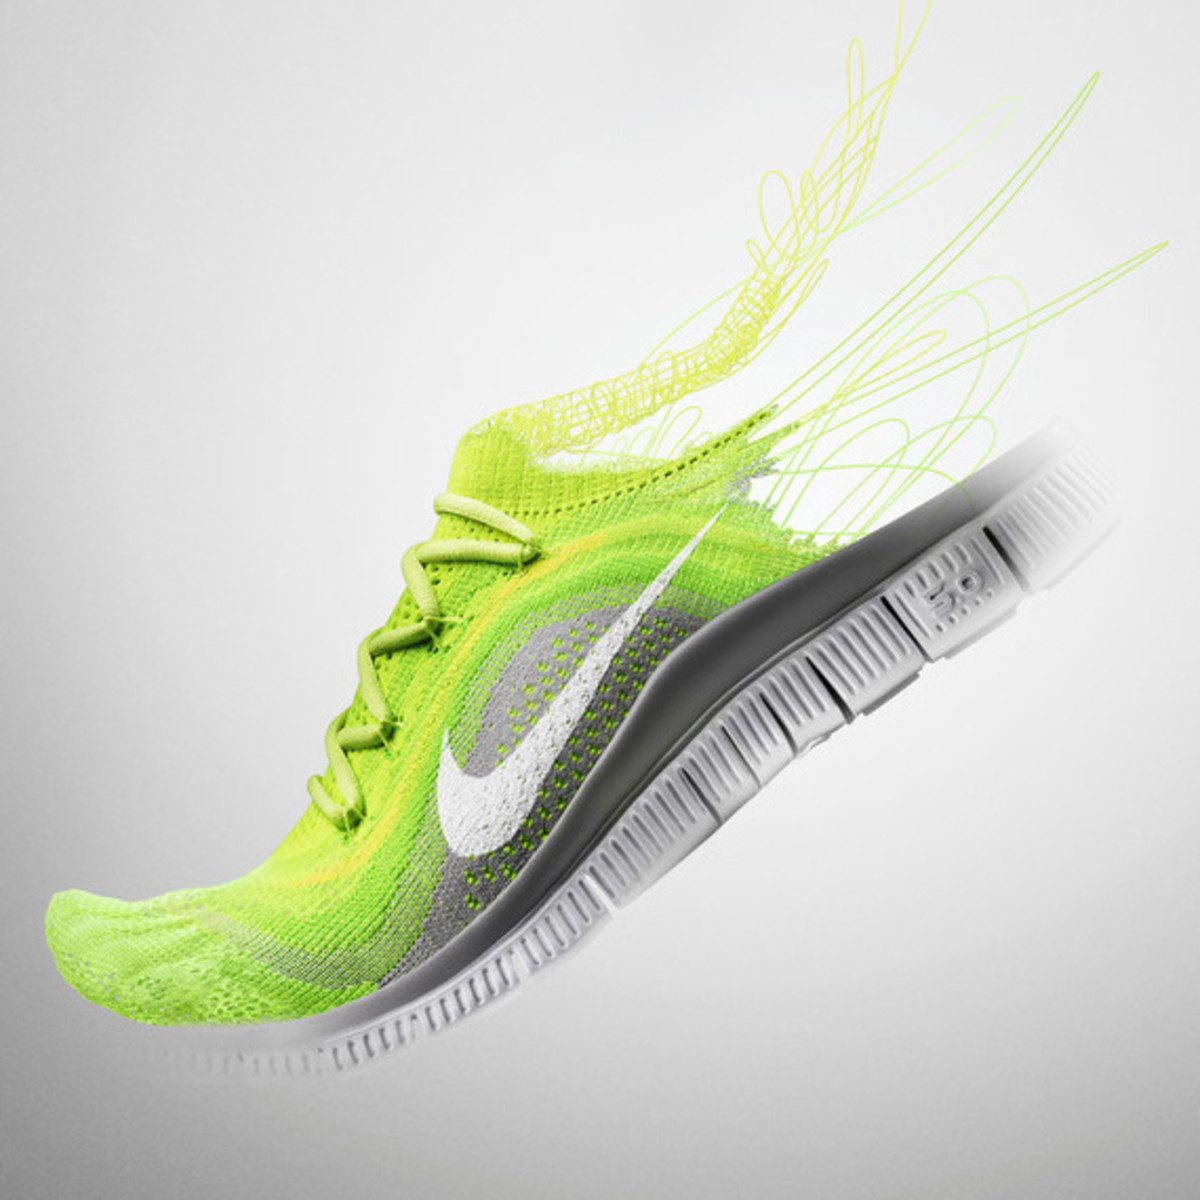 6bc93d623022 Nike Free Flyknit - Officially Unveiled - Freshness Mag